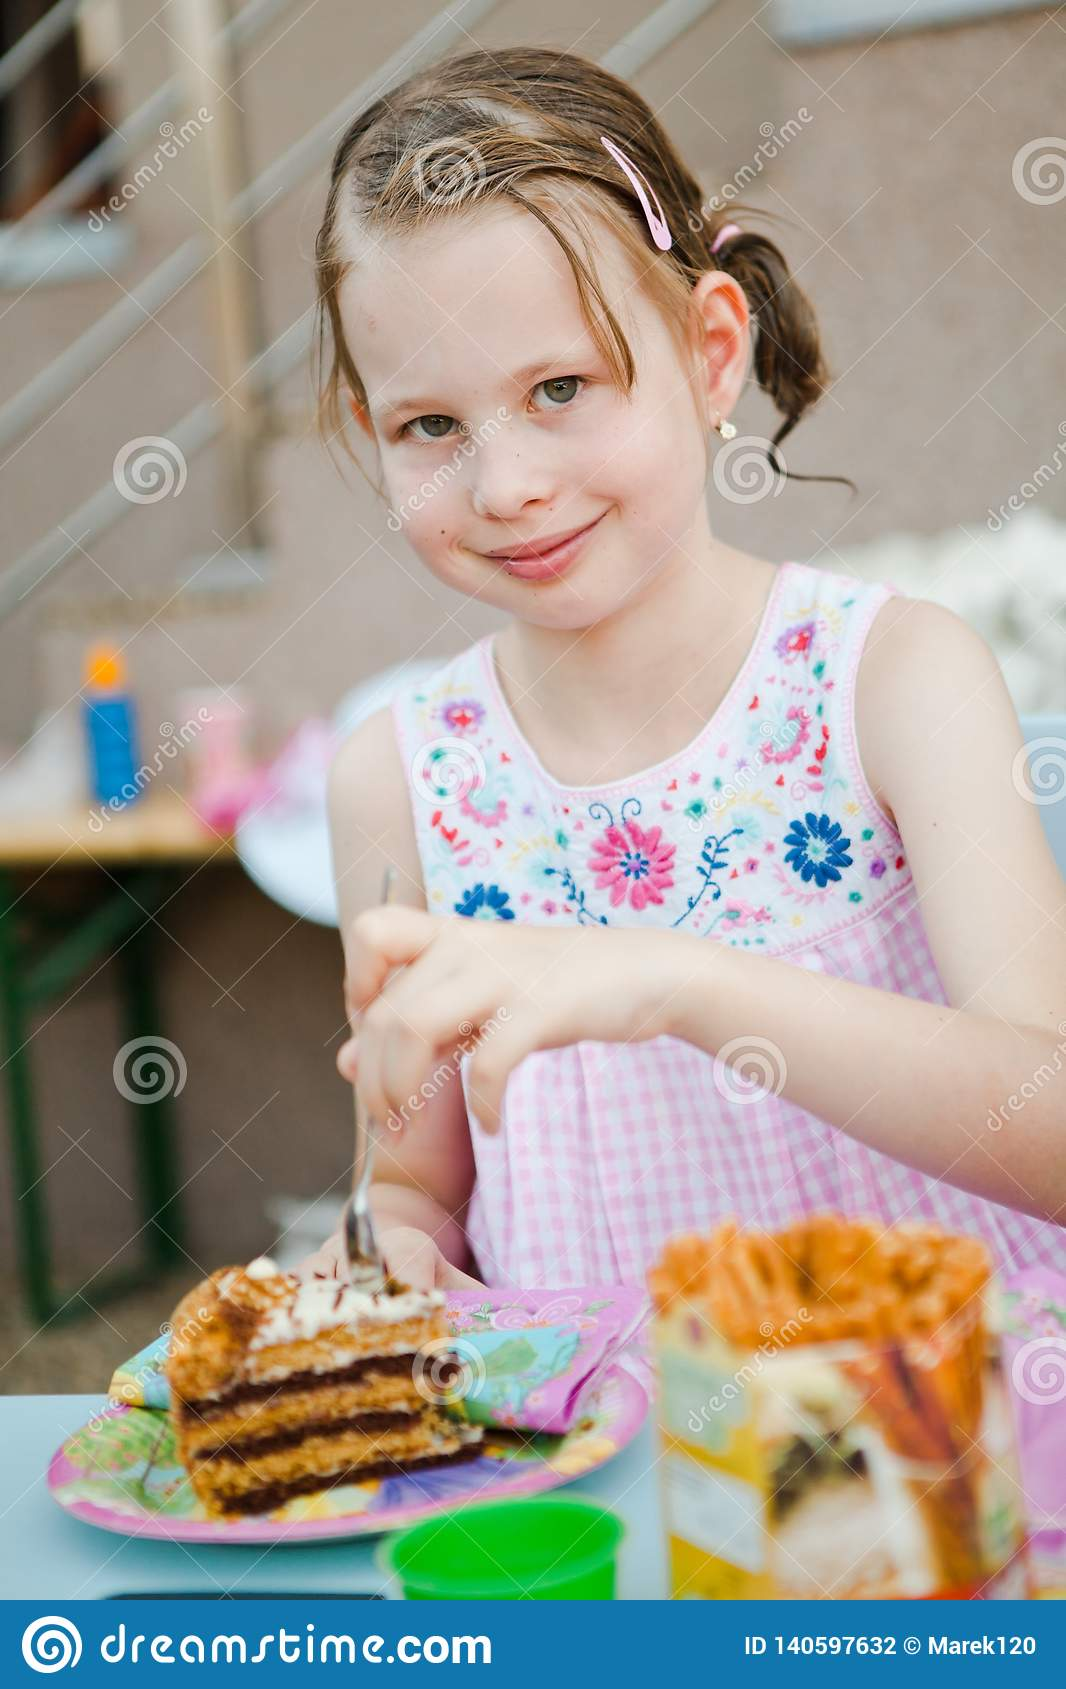 Child eating birthday cake - natural real background